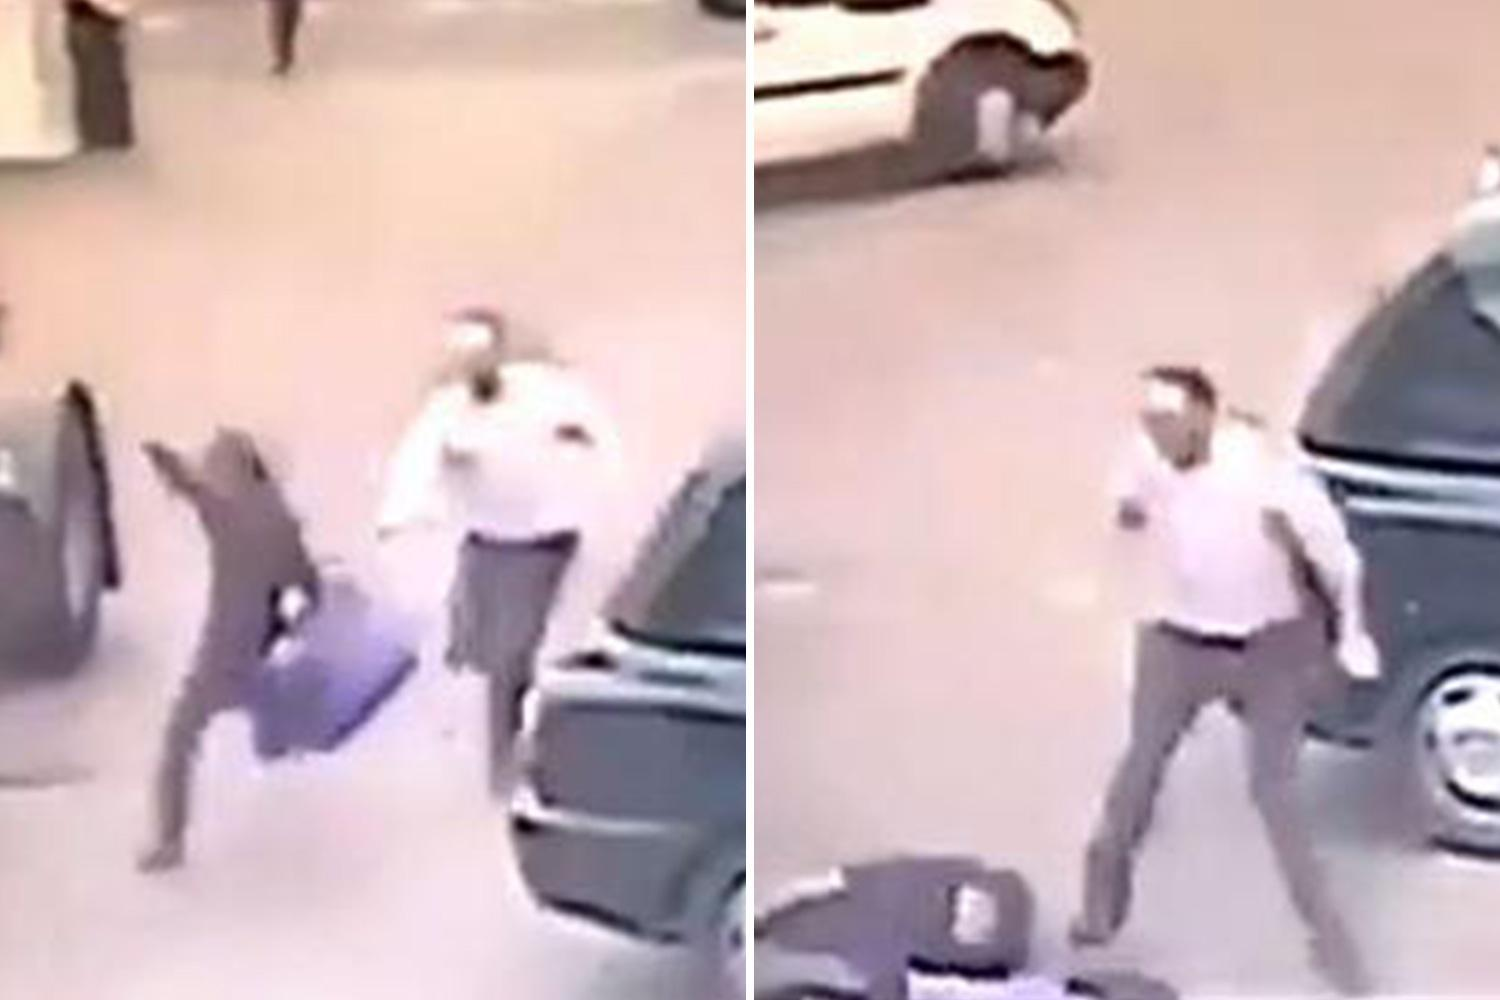 Moment 'shoplifter' fleeing from Tesco trips and is run over by a lorry in the car park